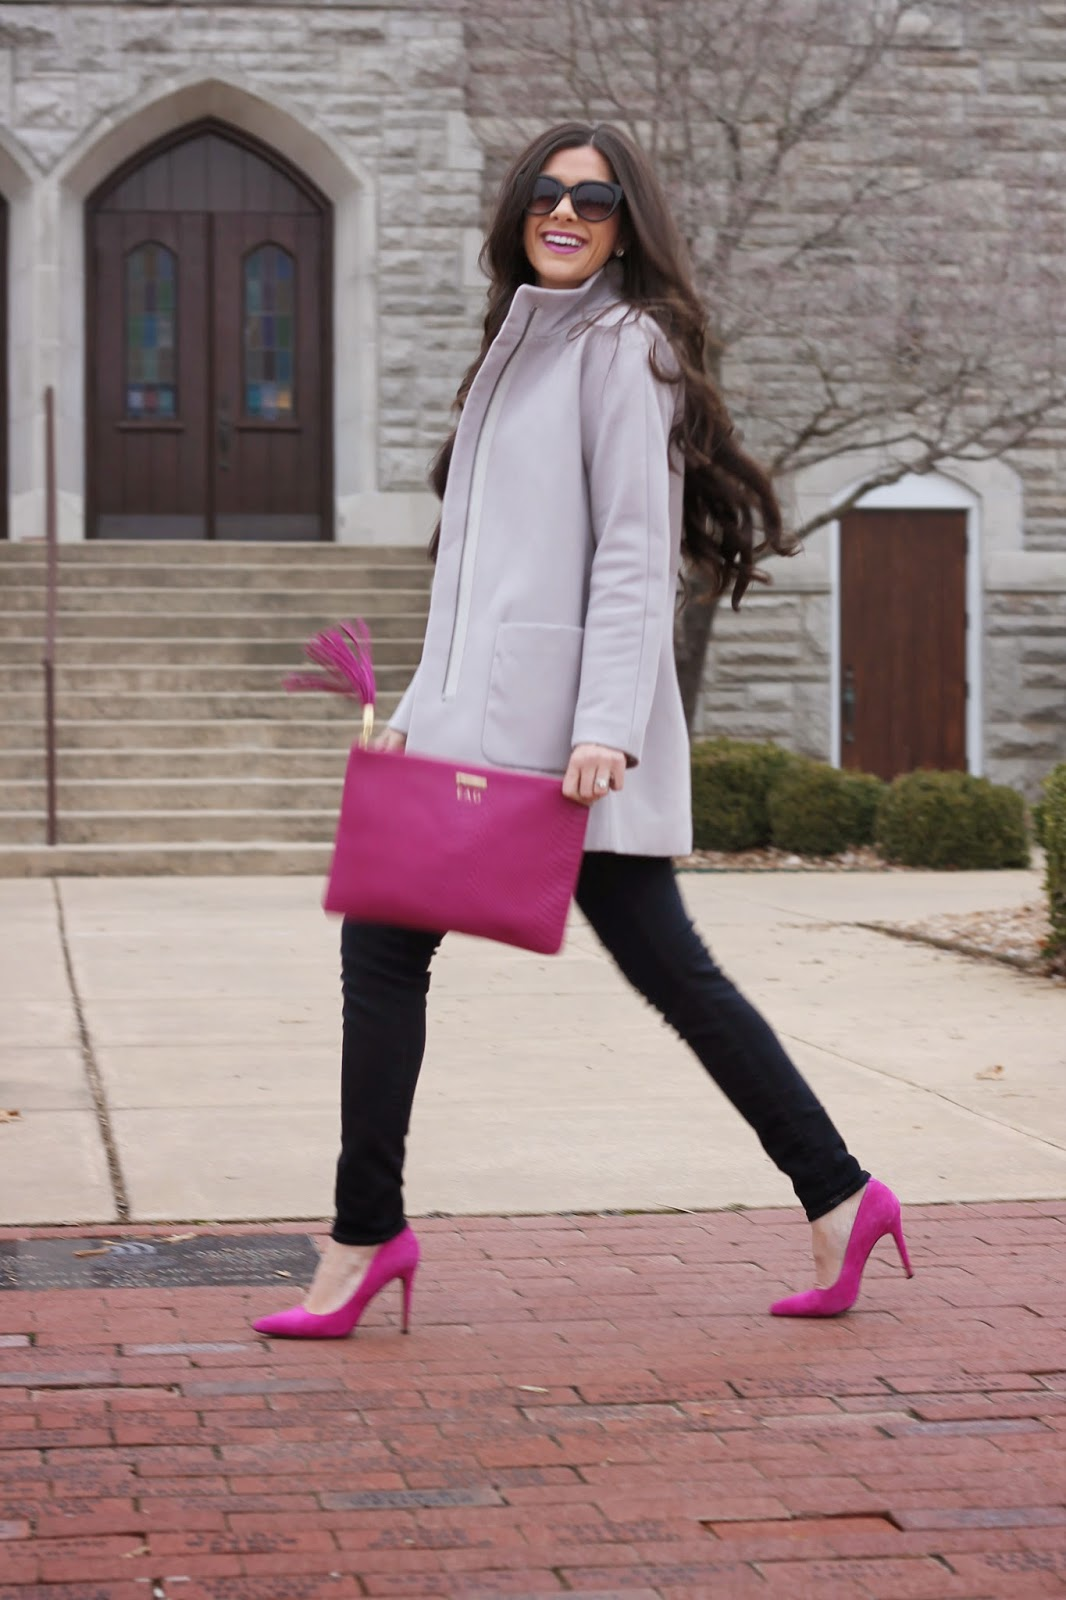 www.thesweetestthingblog.com, The Sweetest Thing Blog, Emily Gemma, Gigi New York clutch, Uber clutch in Magenta, gray sweater, jbrand jeans, jbrand denim, crystal necklace, jcrew necklace, jcrew inspired necklace, forever 21 sunglasses, mac lipstick, pinterest fashion, winter pinterest fashion, pinterest pink heels gray sweater, fuschia pumps, fuschia heels, gold michael kors watch, gigi new york bag